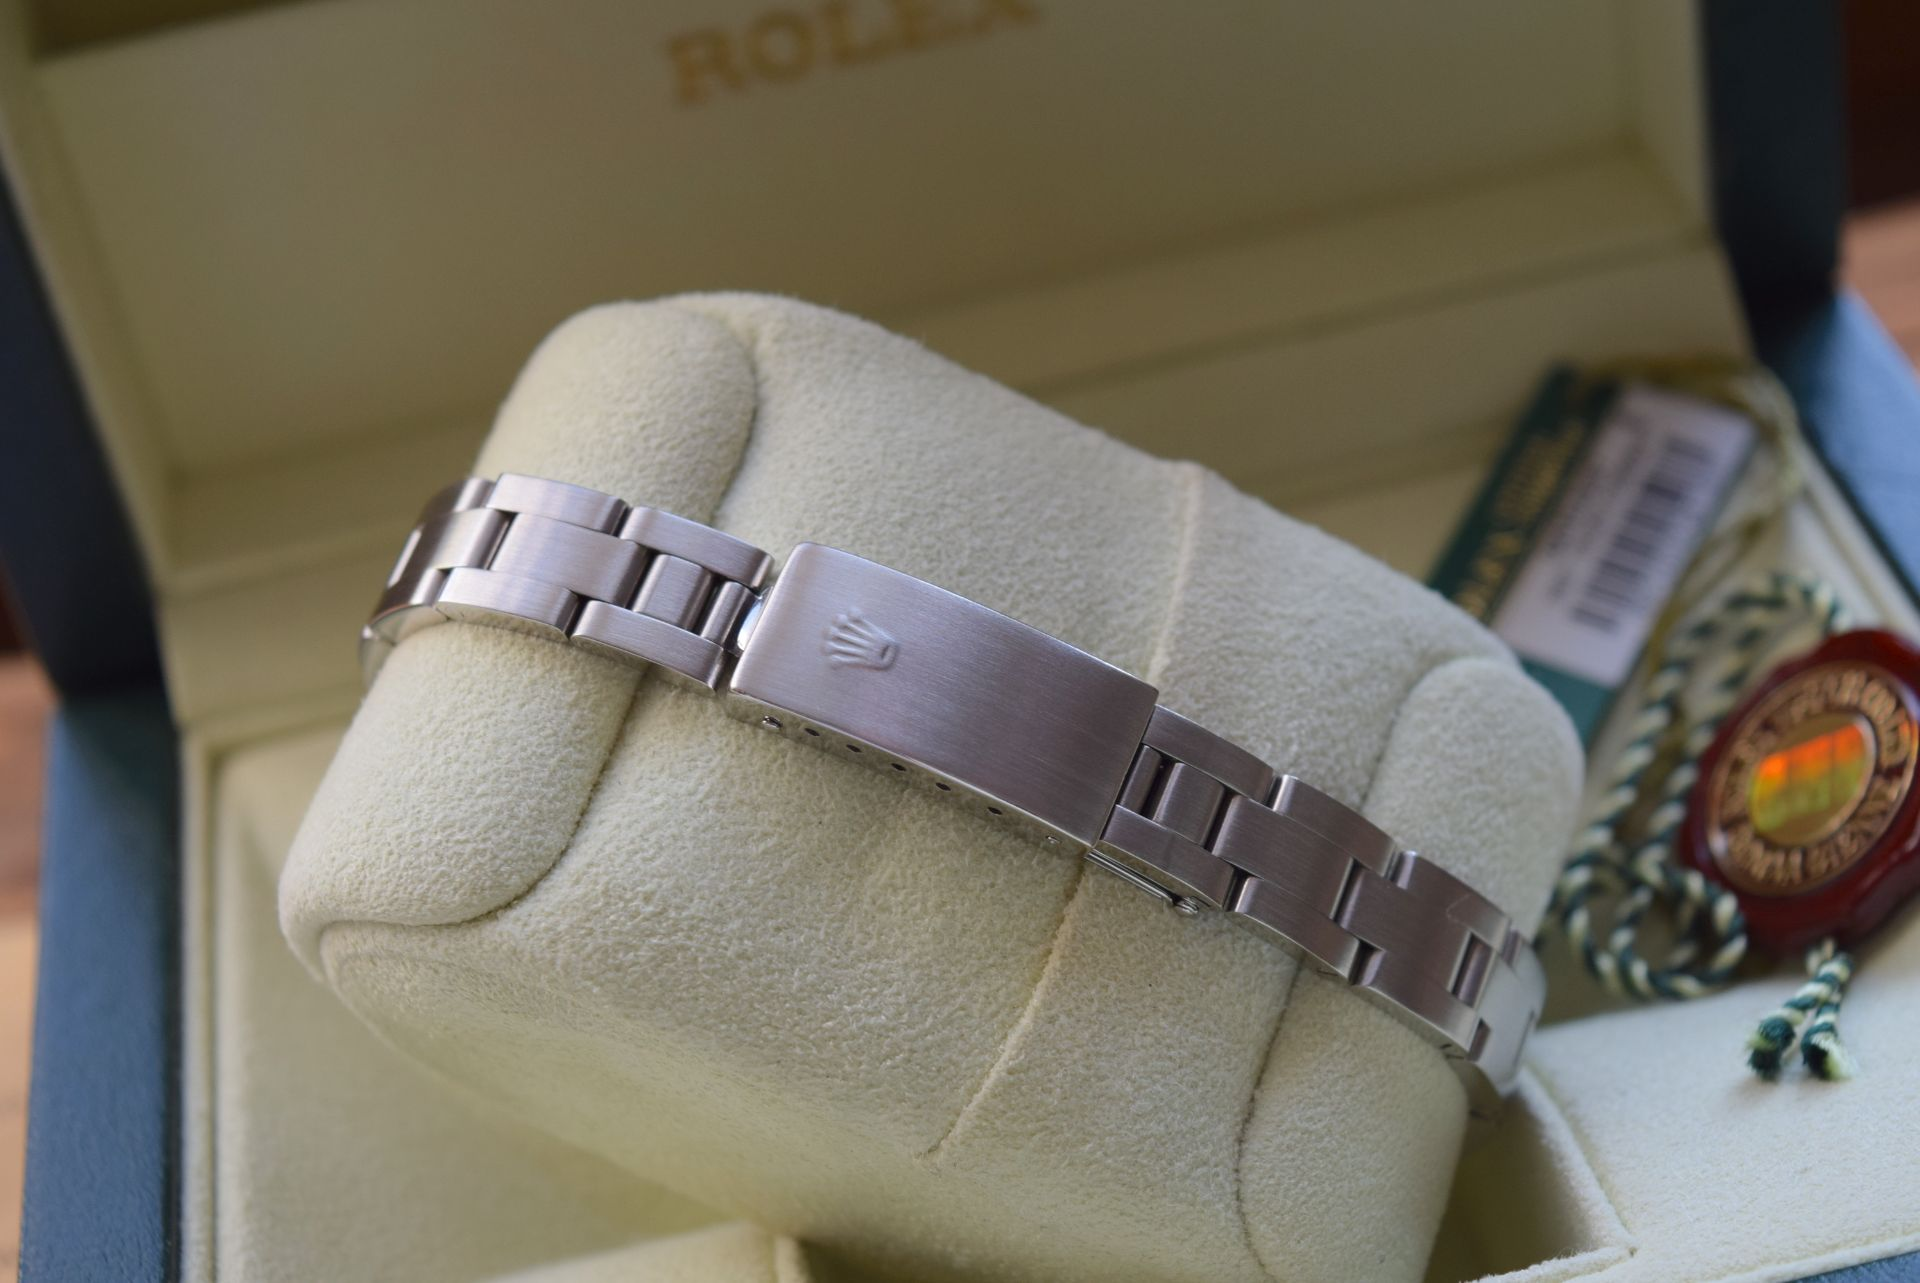 *FULL SET* ROLEX DATEJUST (LADIES) STEEL & 18CT WHITE GOLD - NAVY BLUE 'ROMAN NUMERAL' DIAL - Image 8 of 19